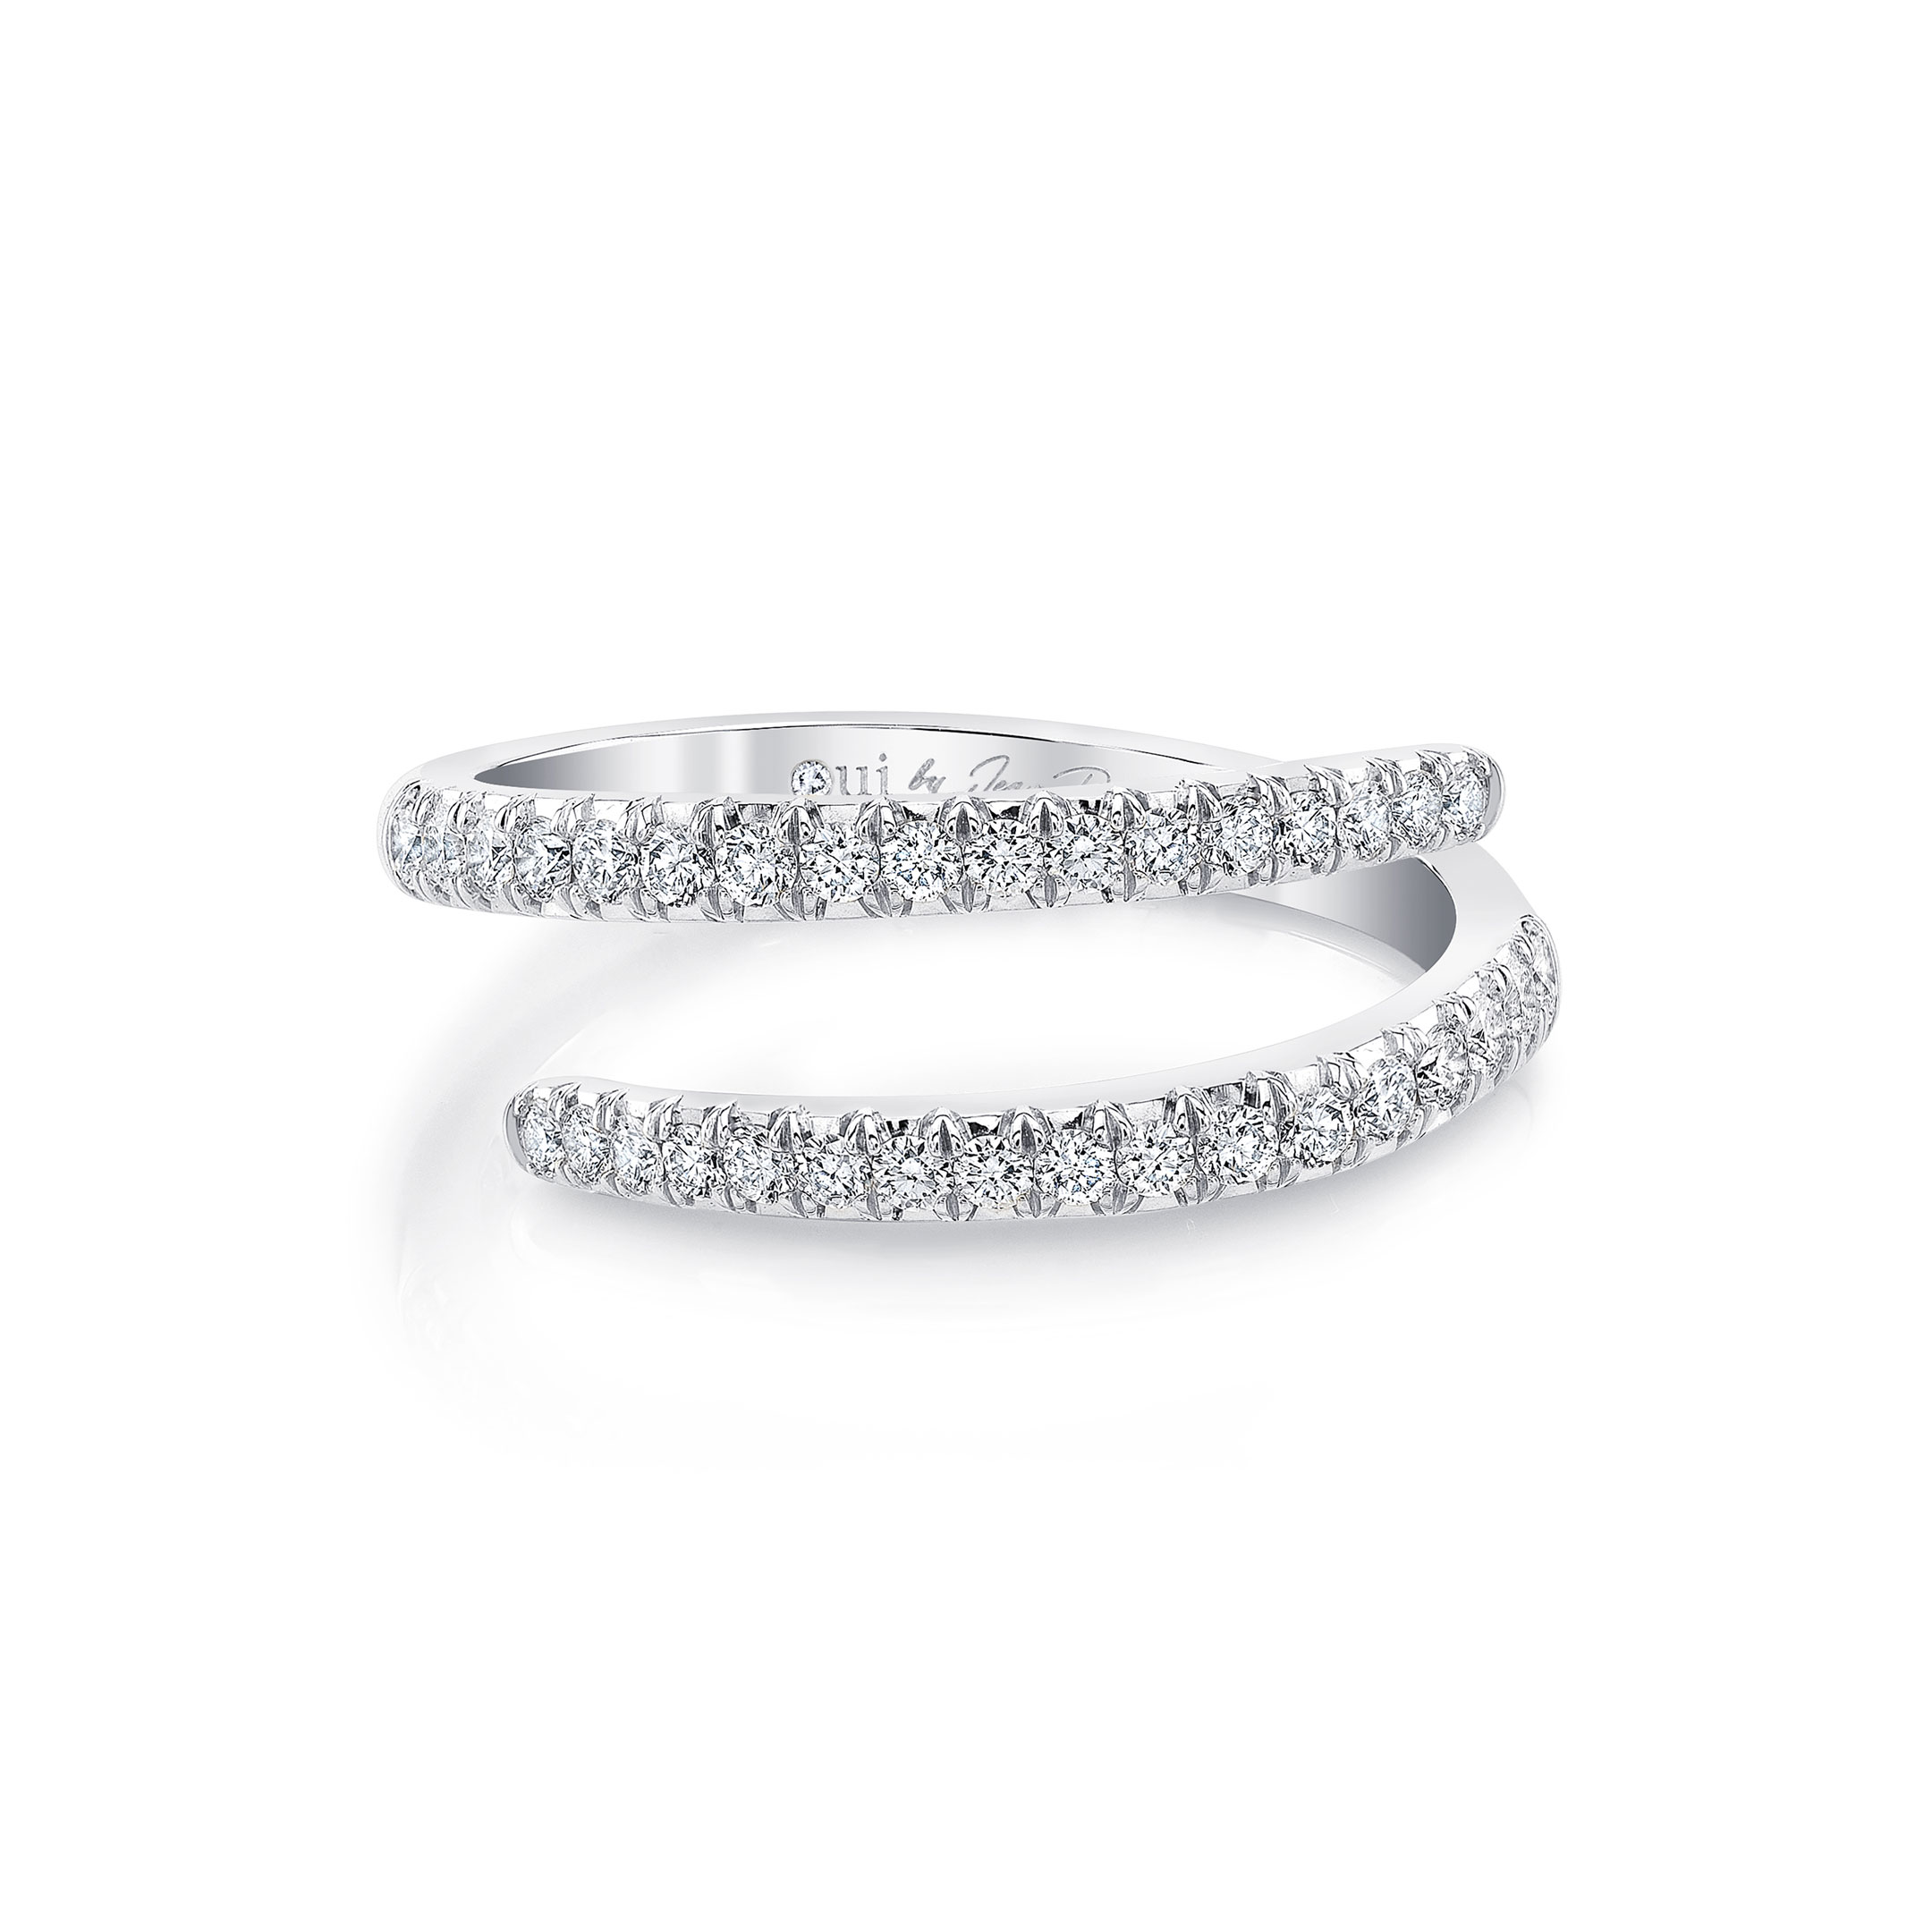 Diamond Pavé Wrap Ring in 18k White Gold Front View by Oui by Jean Dousset